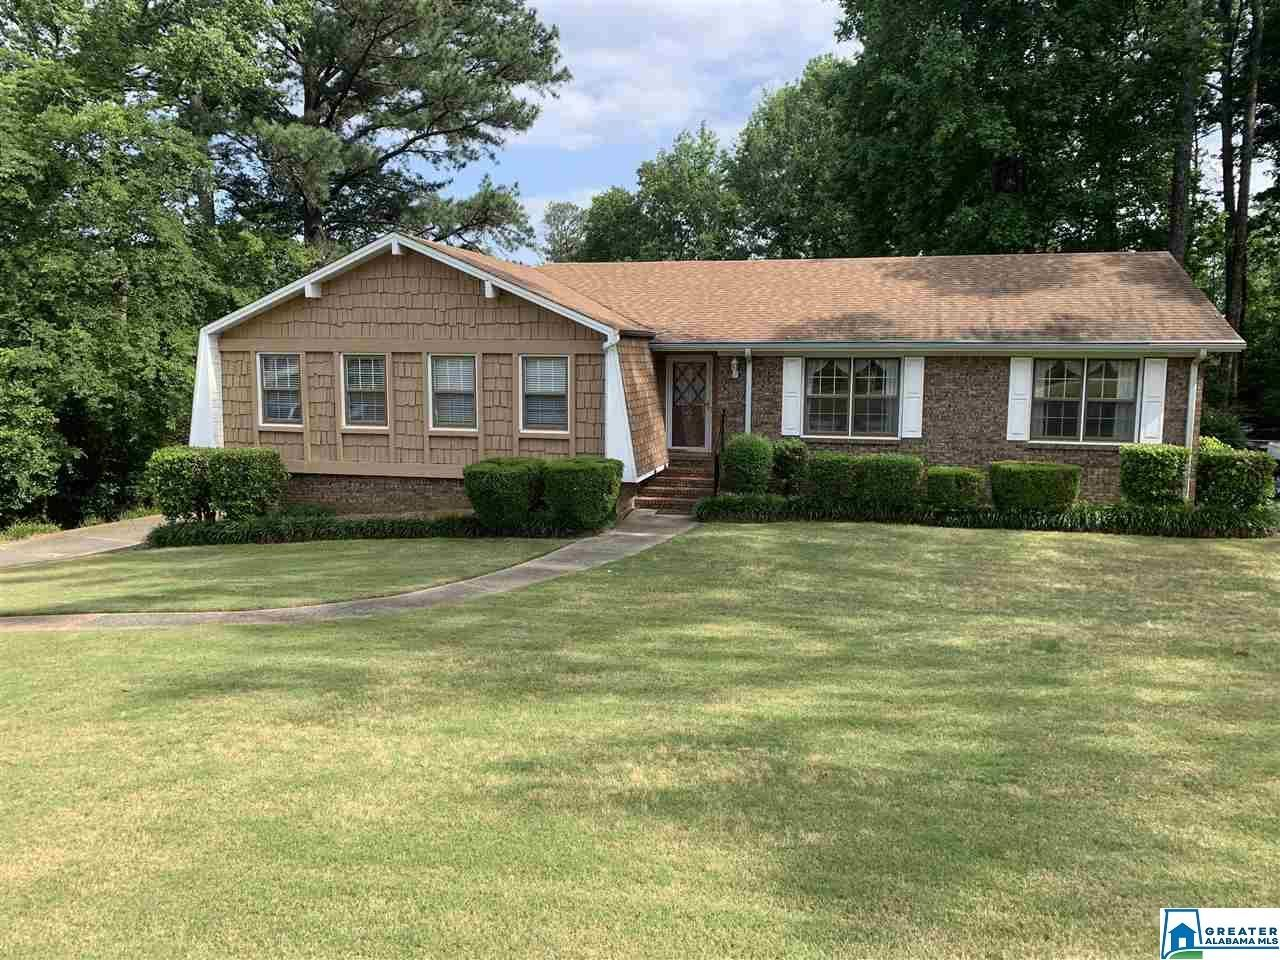 2517 REDSTART LN, Hoover, AL 35226 - MLS#: 883557